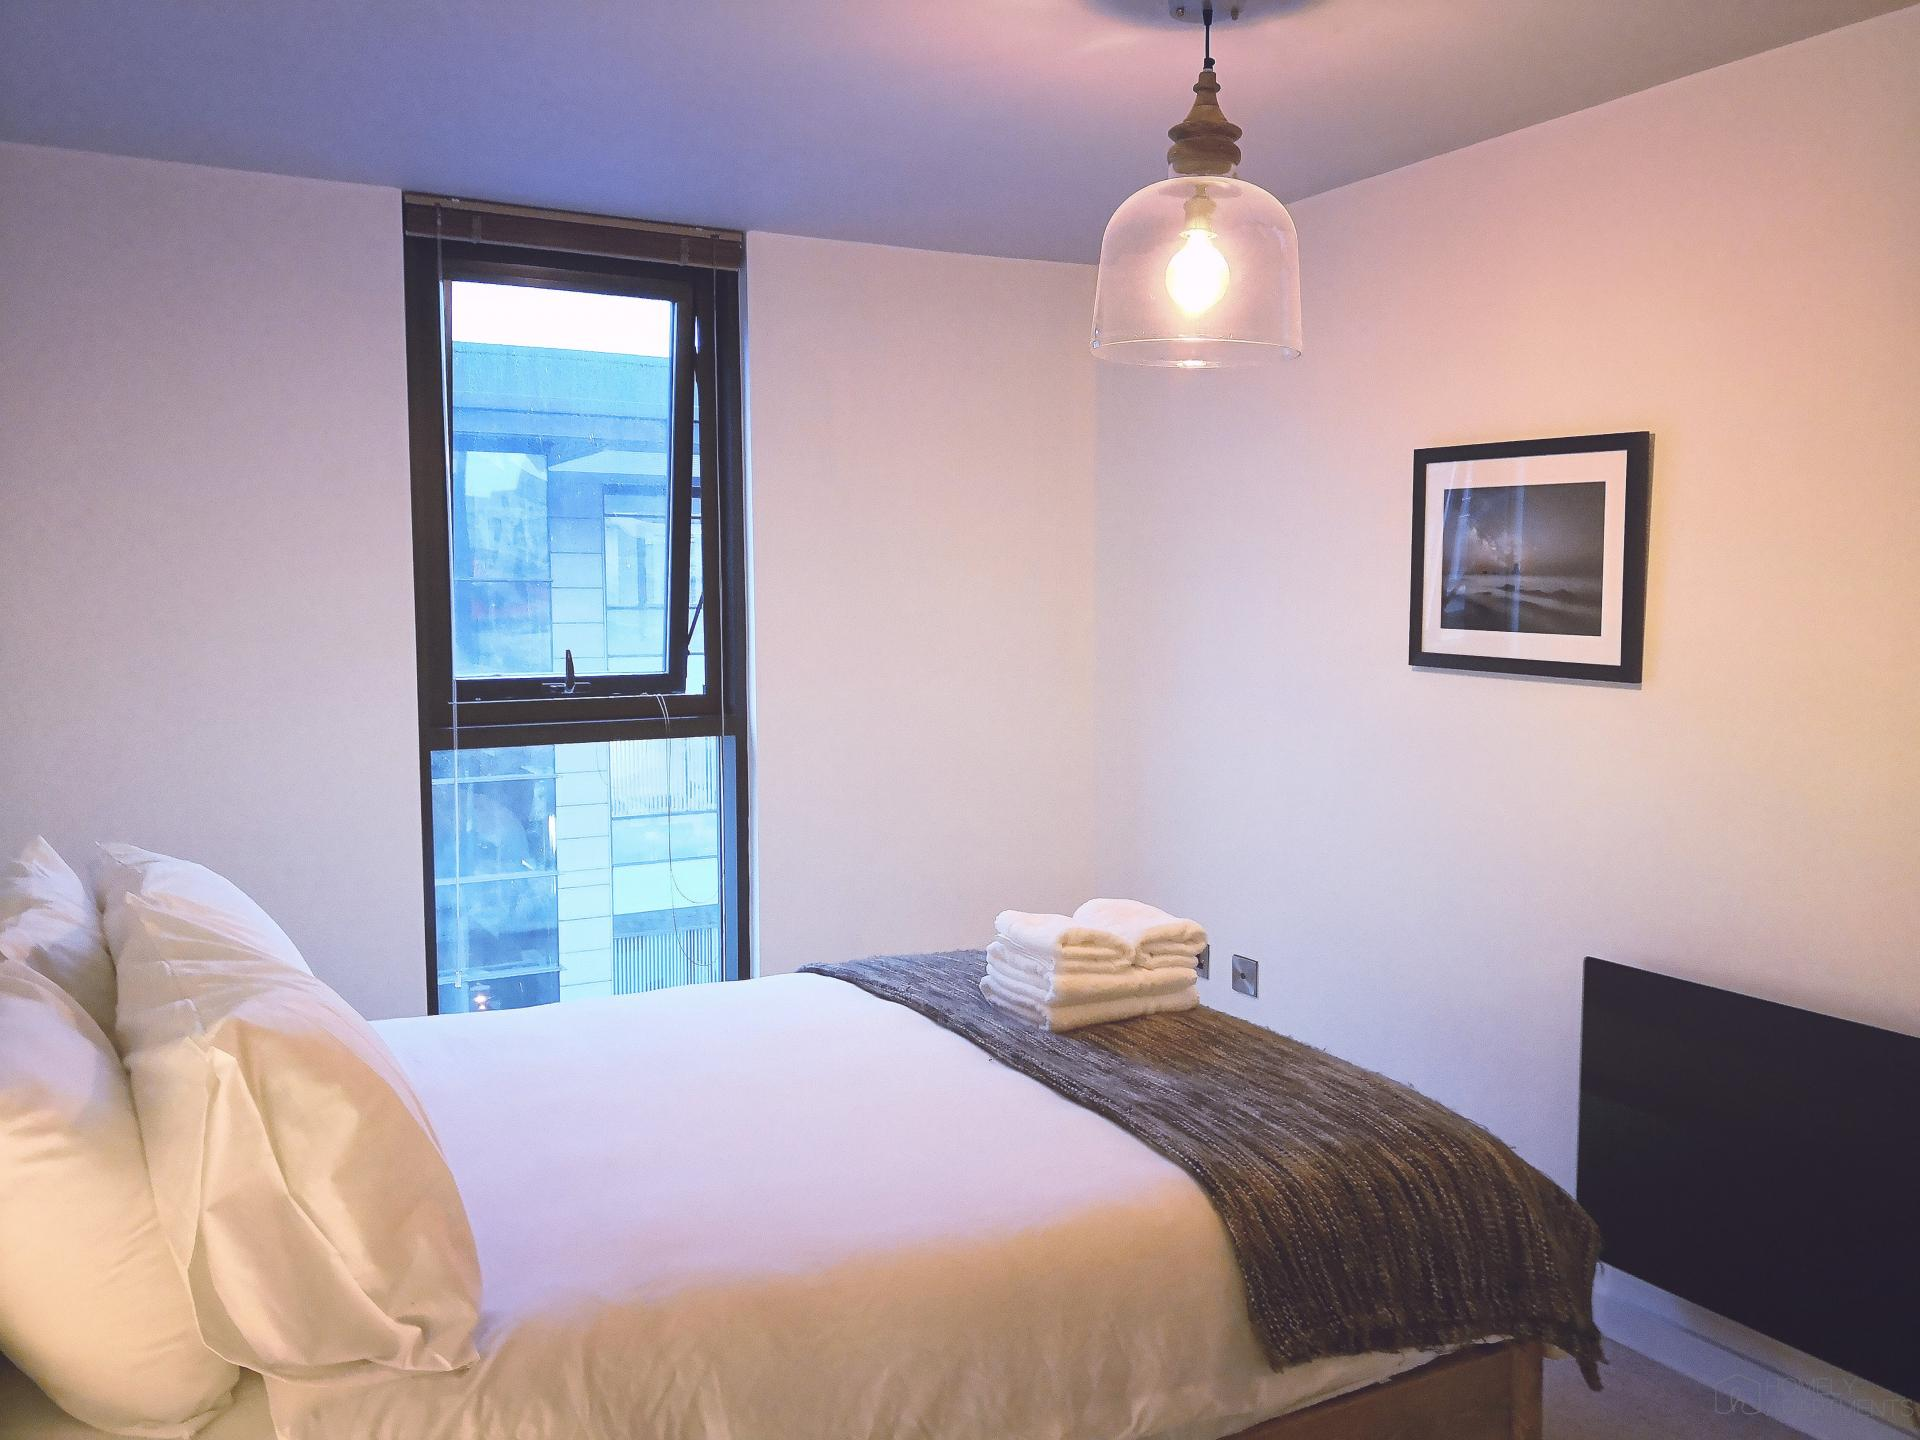 Double bed at Blonk Street Apartments